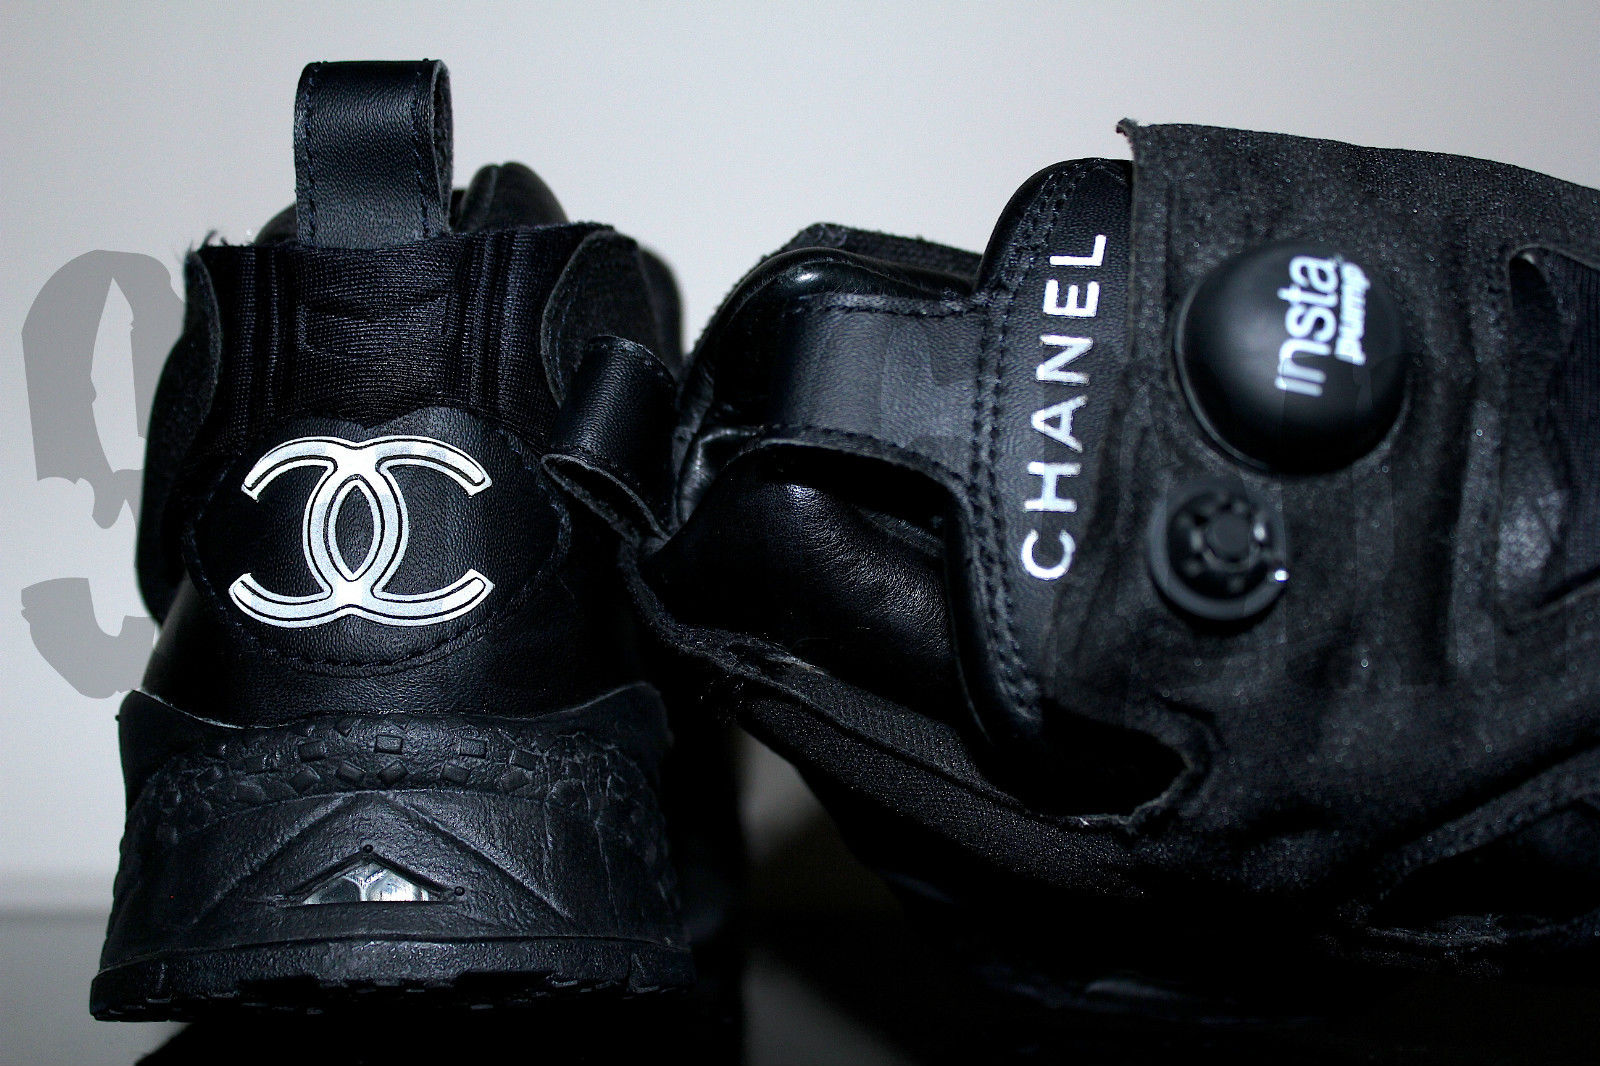 You've Never Seen This Chanel x Reebok